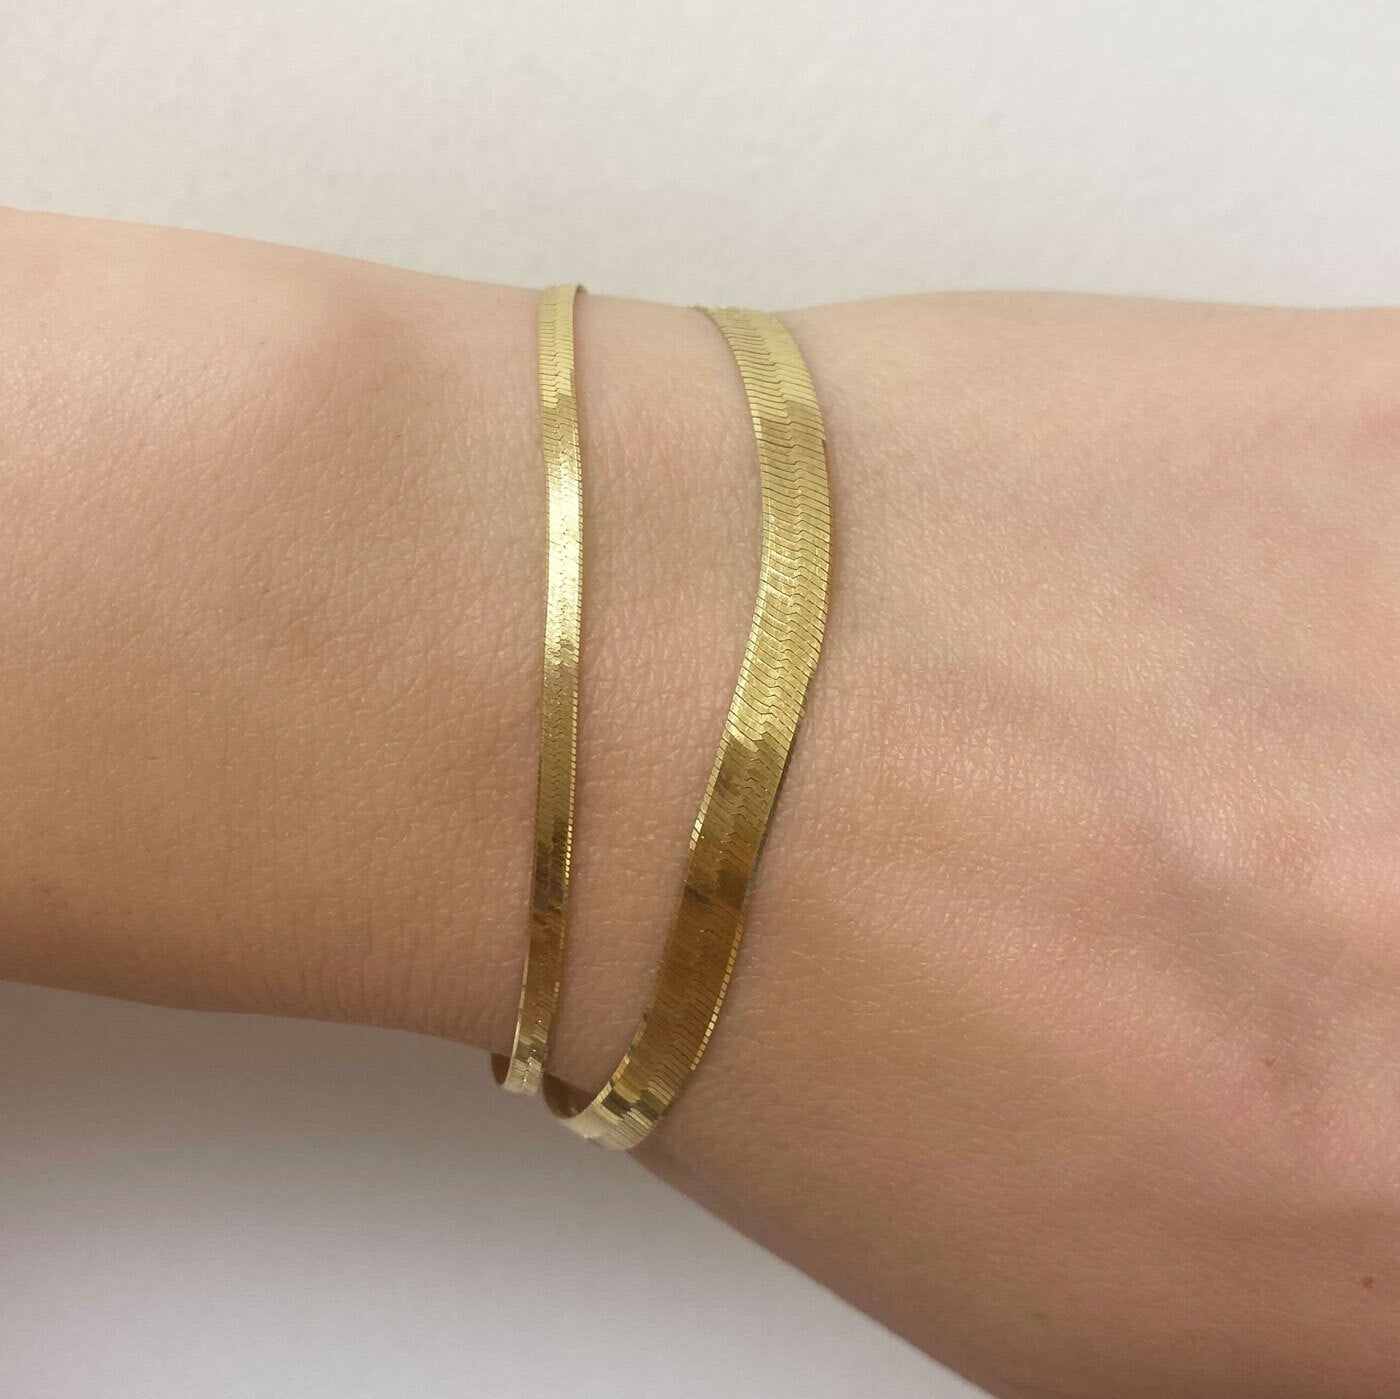 14K Gold Grand Herringbone Bracelet